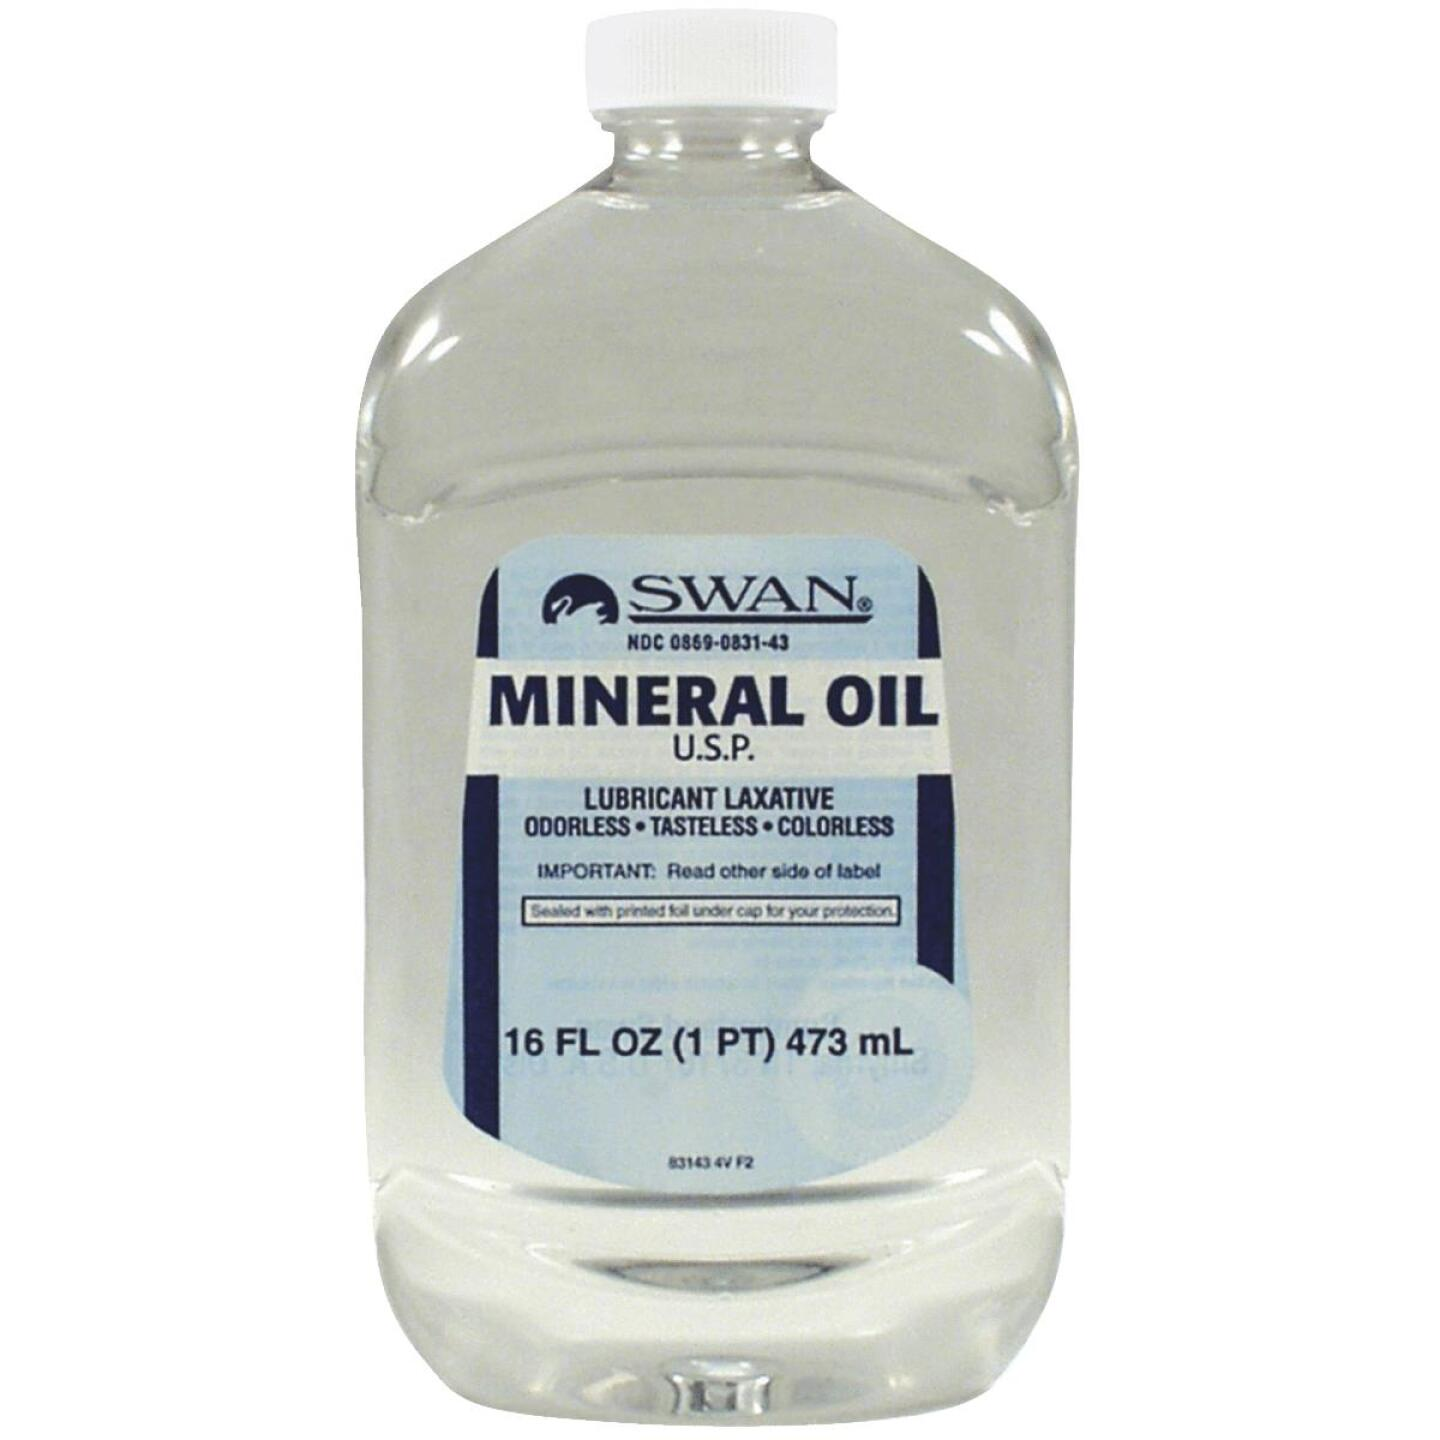 Swan 16 Oz. Tasteless Mineral Oil Image 1